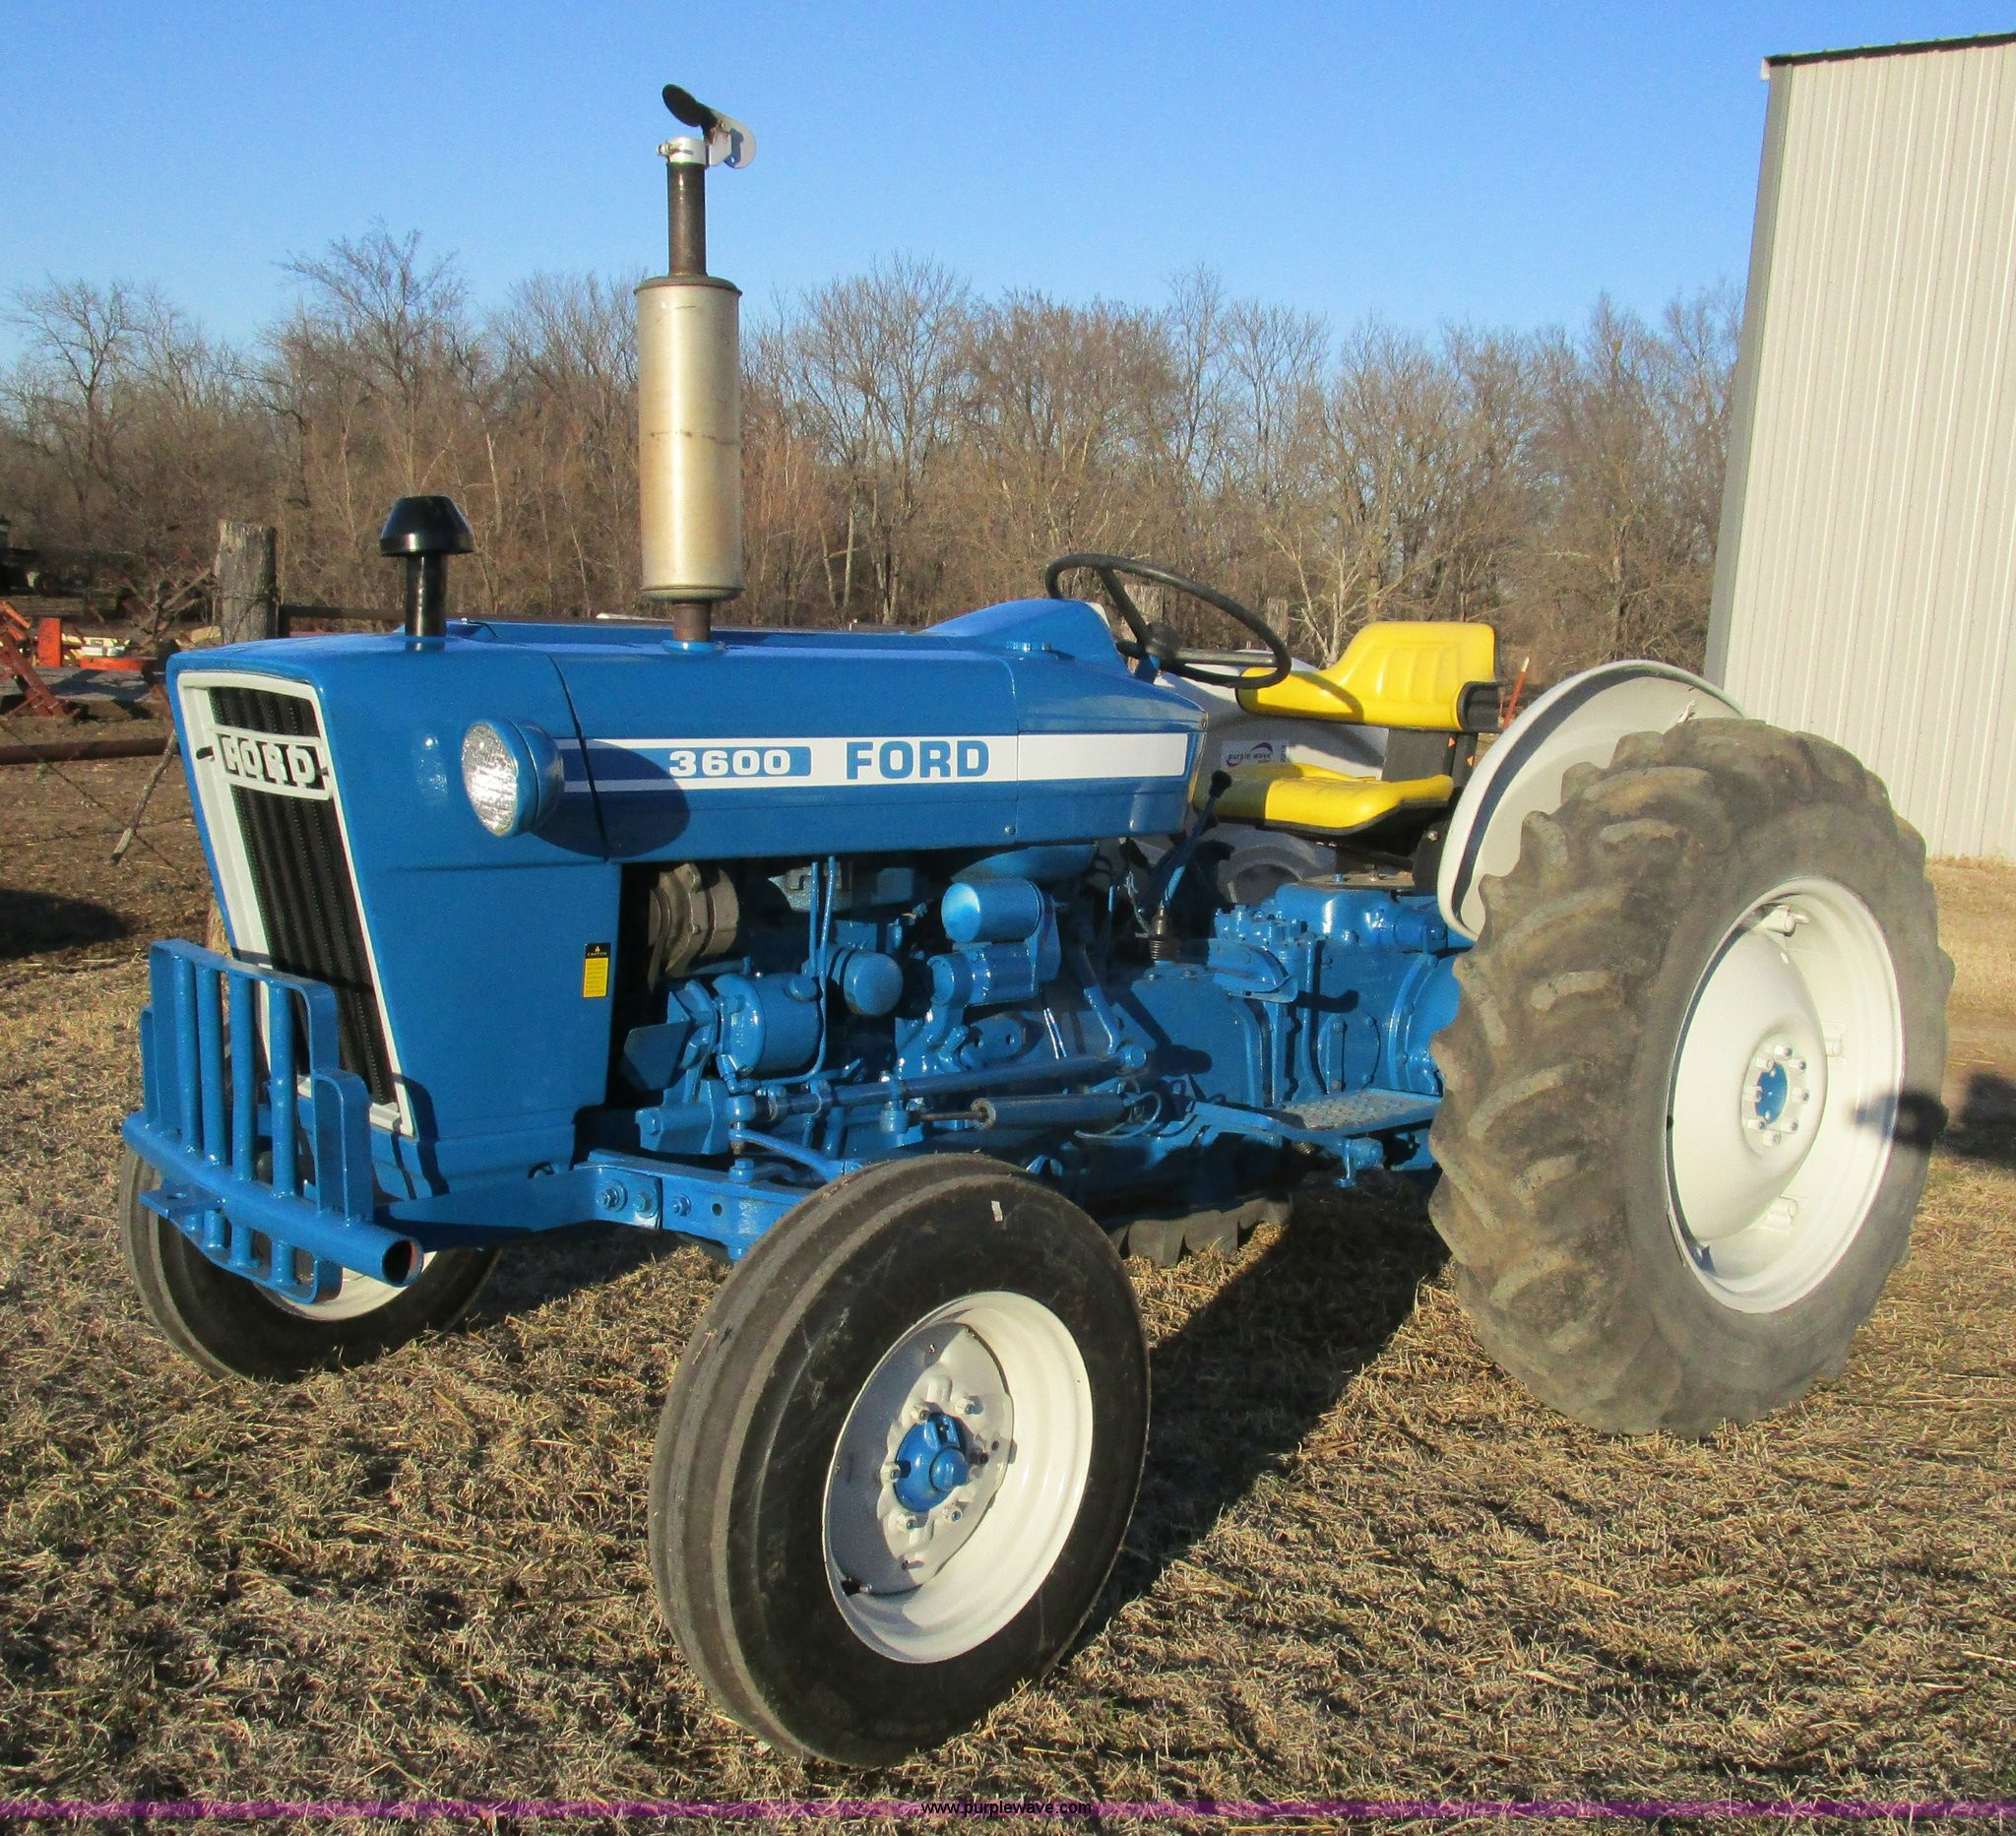 ford 3600 tractor parts diagram 1976 ford 3600 tractor item d2319 of ford  3600 tractor parts